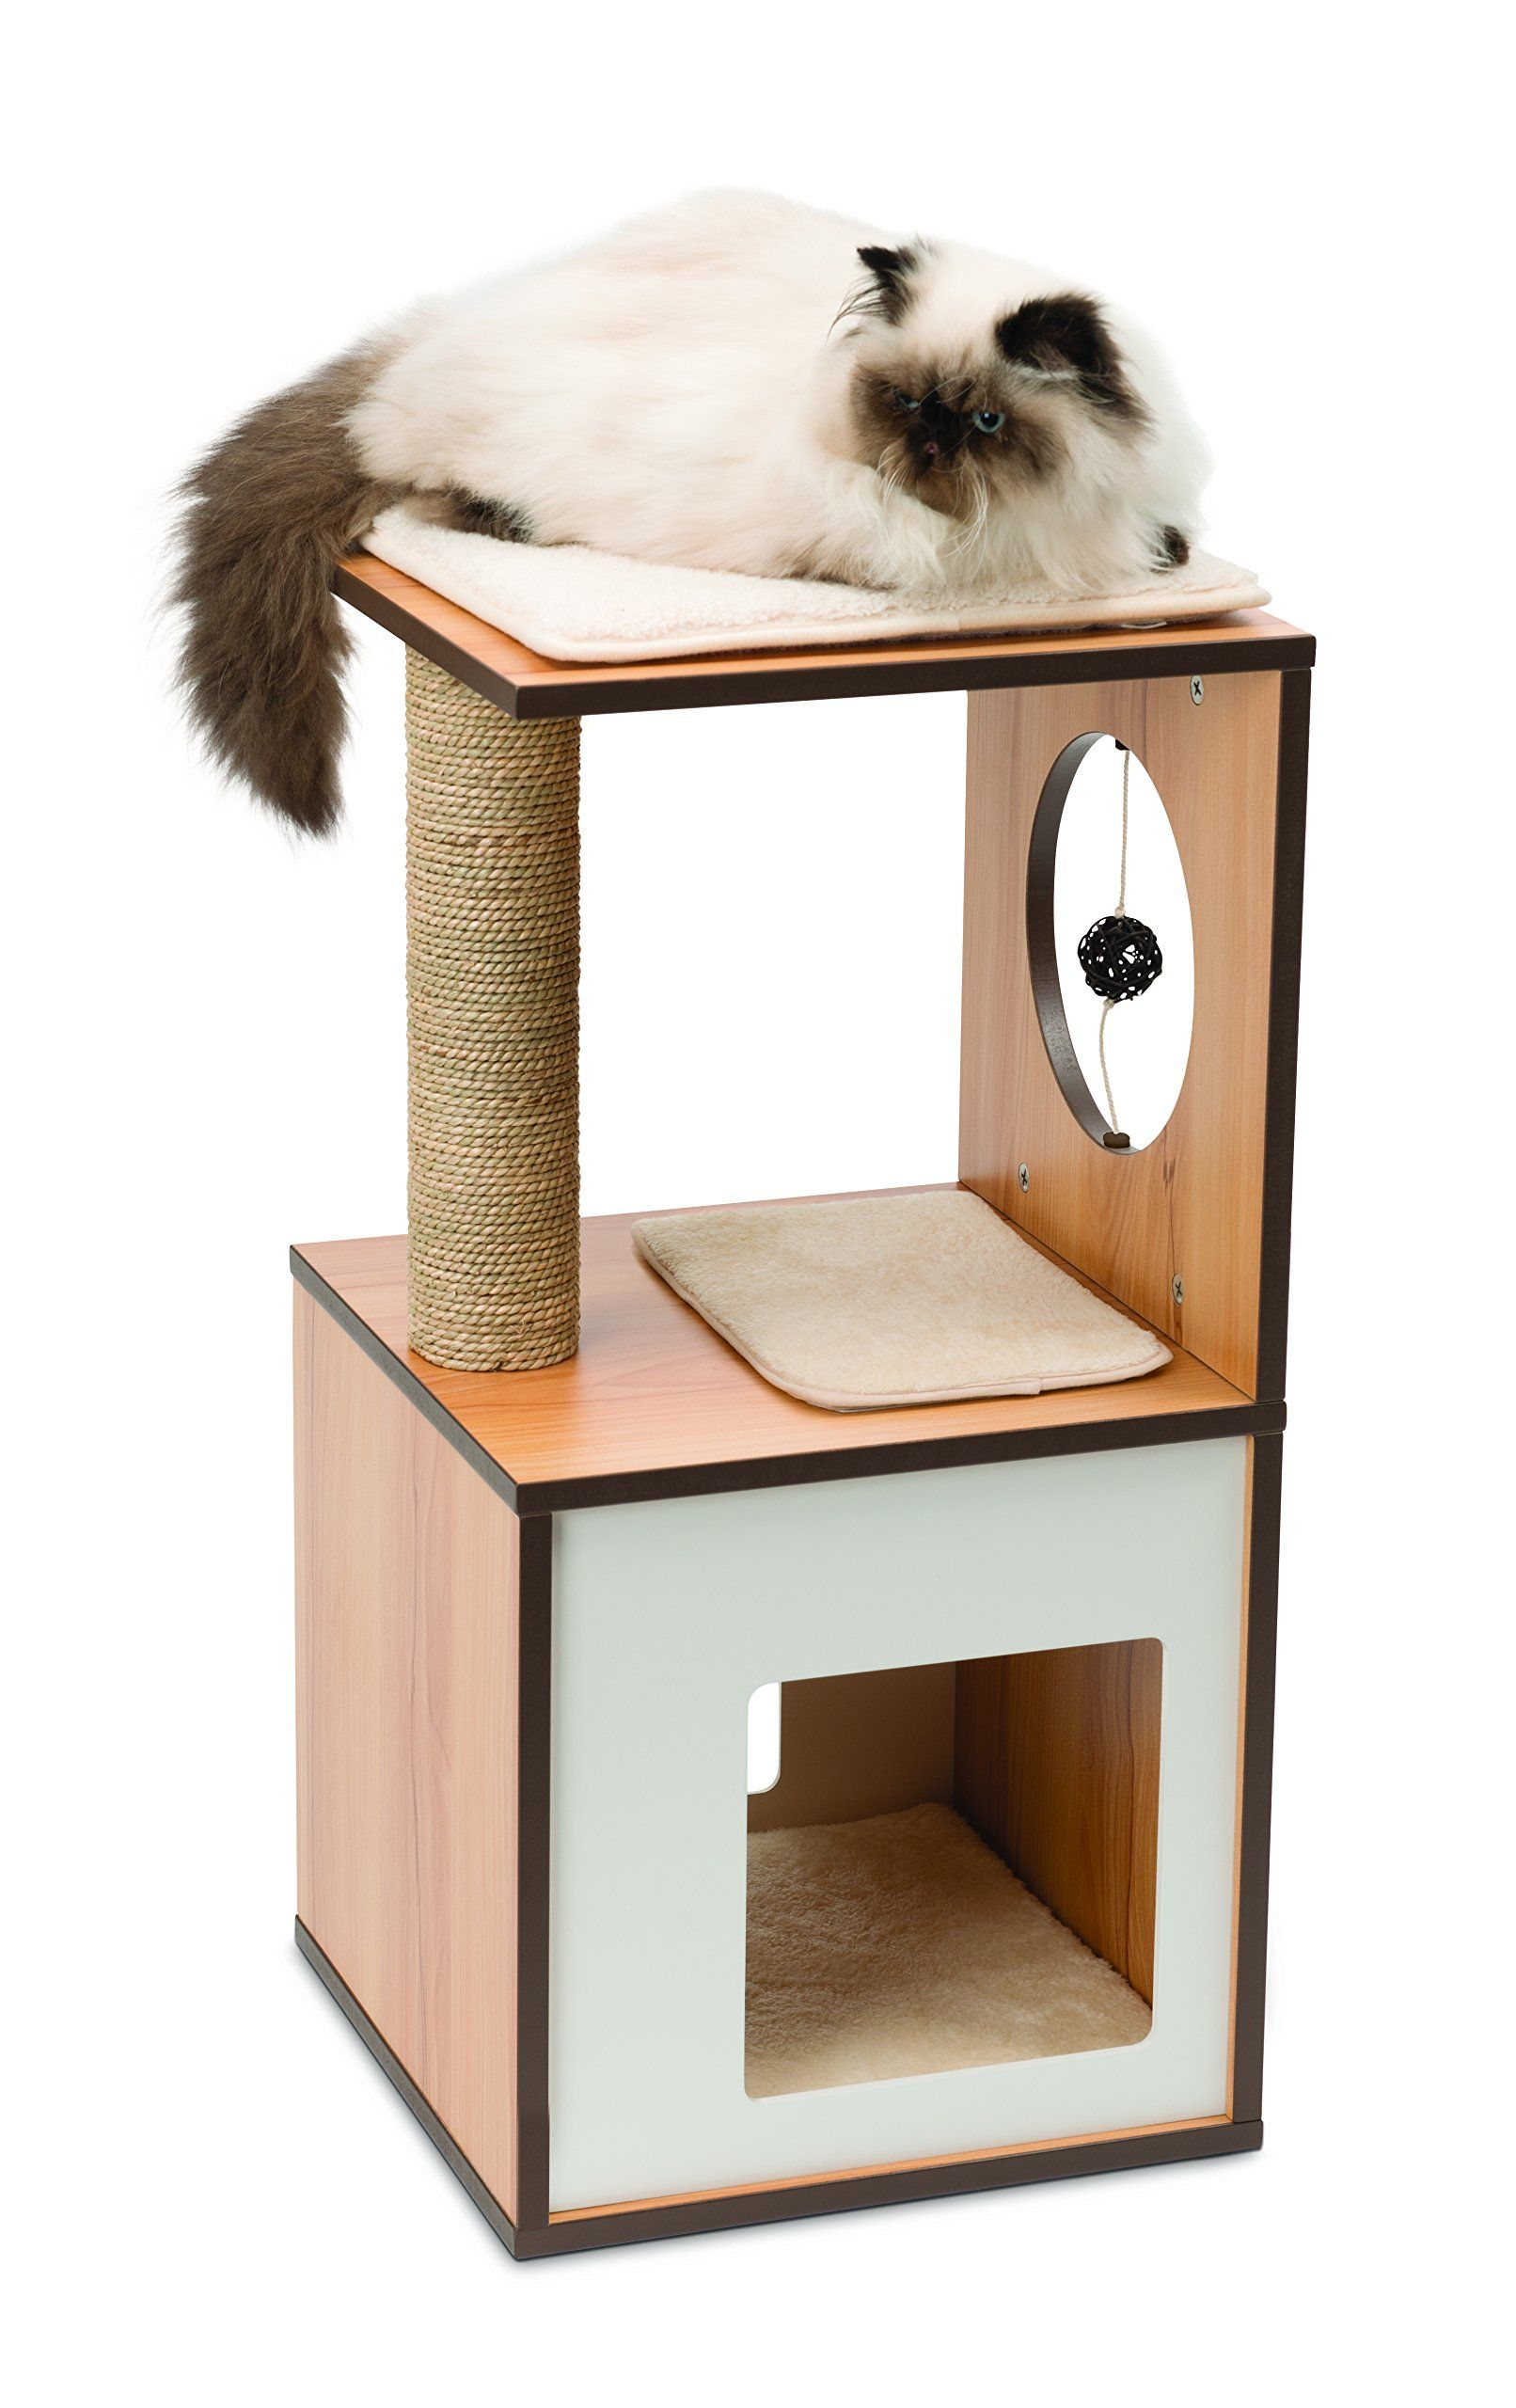 Vesper Vbox Small Walnut Take A Look At The Photo By Going To The Link This Is An Affili Vesper Cat Furniture Cat Furniture Modern Cat Furniture